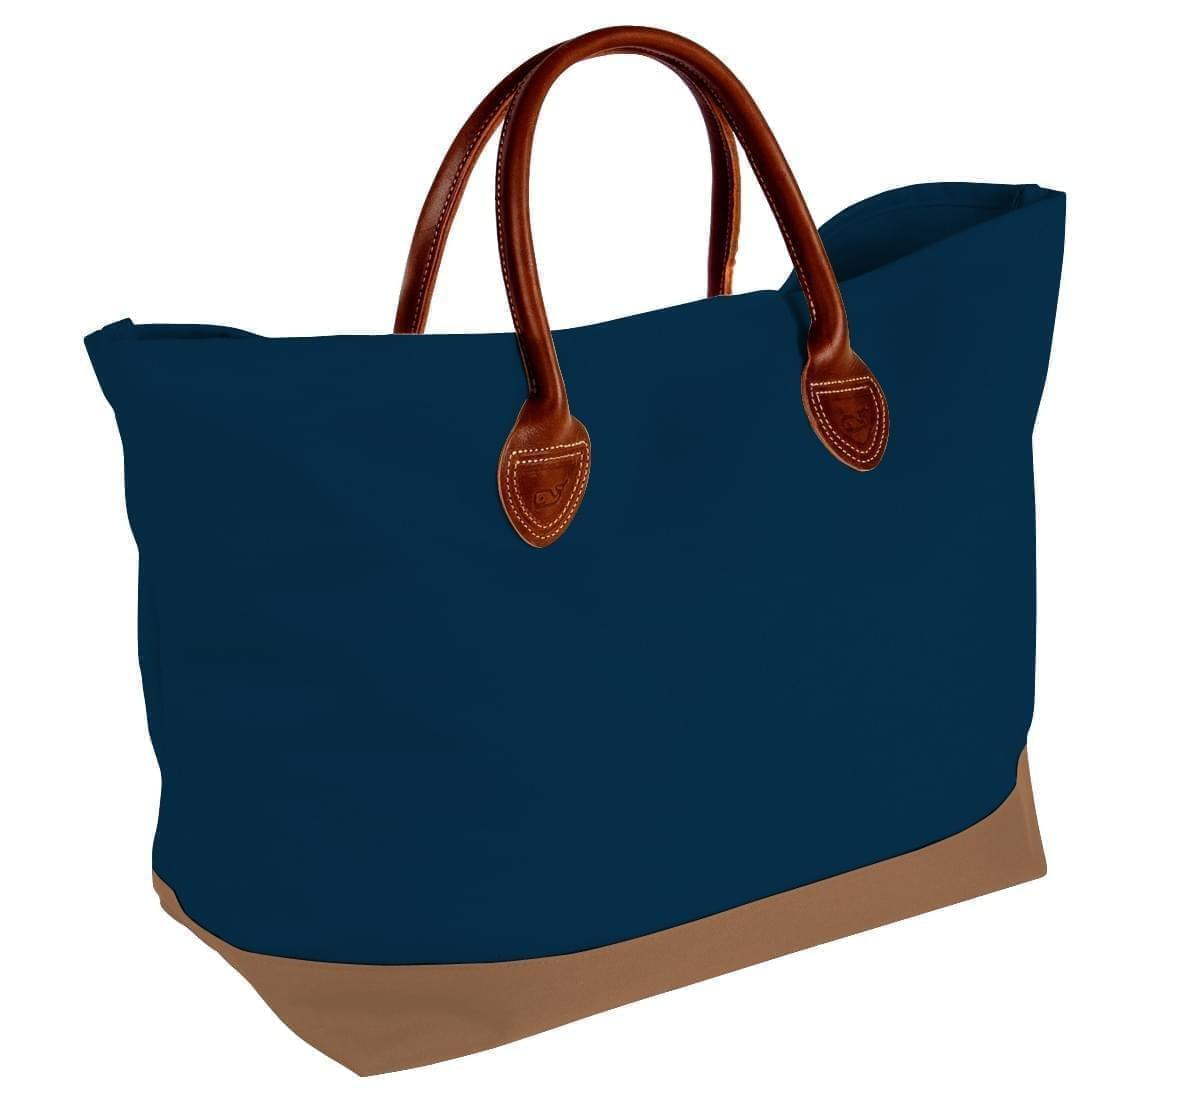 USA Made Canvas Leather Handle Totes, Navy-Bronze, 10899-OC9